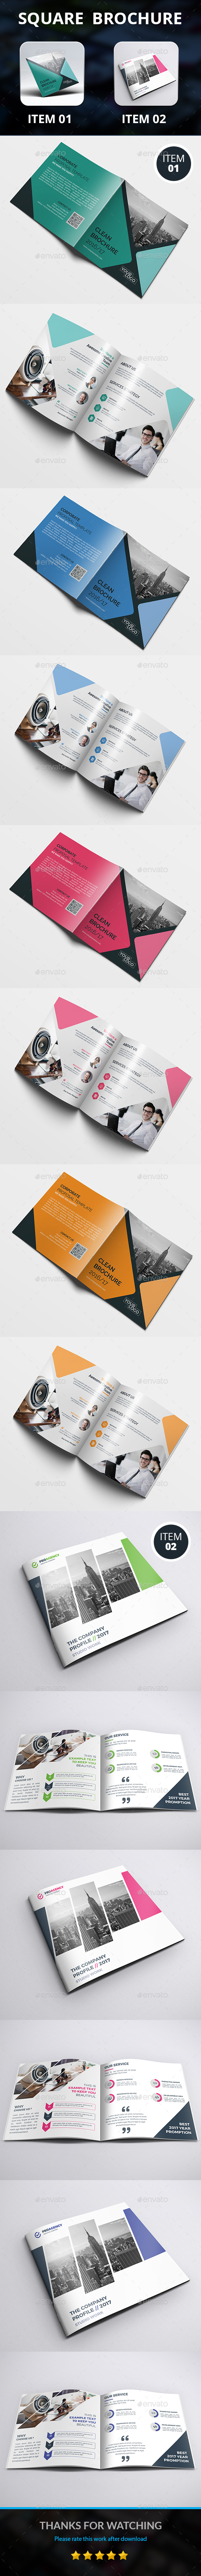 Square Brochure Bundle - Corporate Brochures